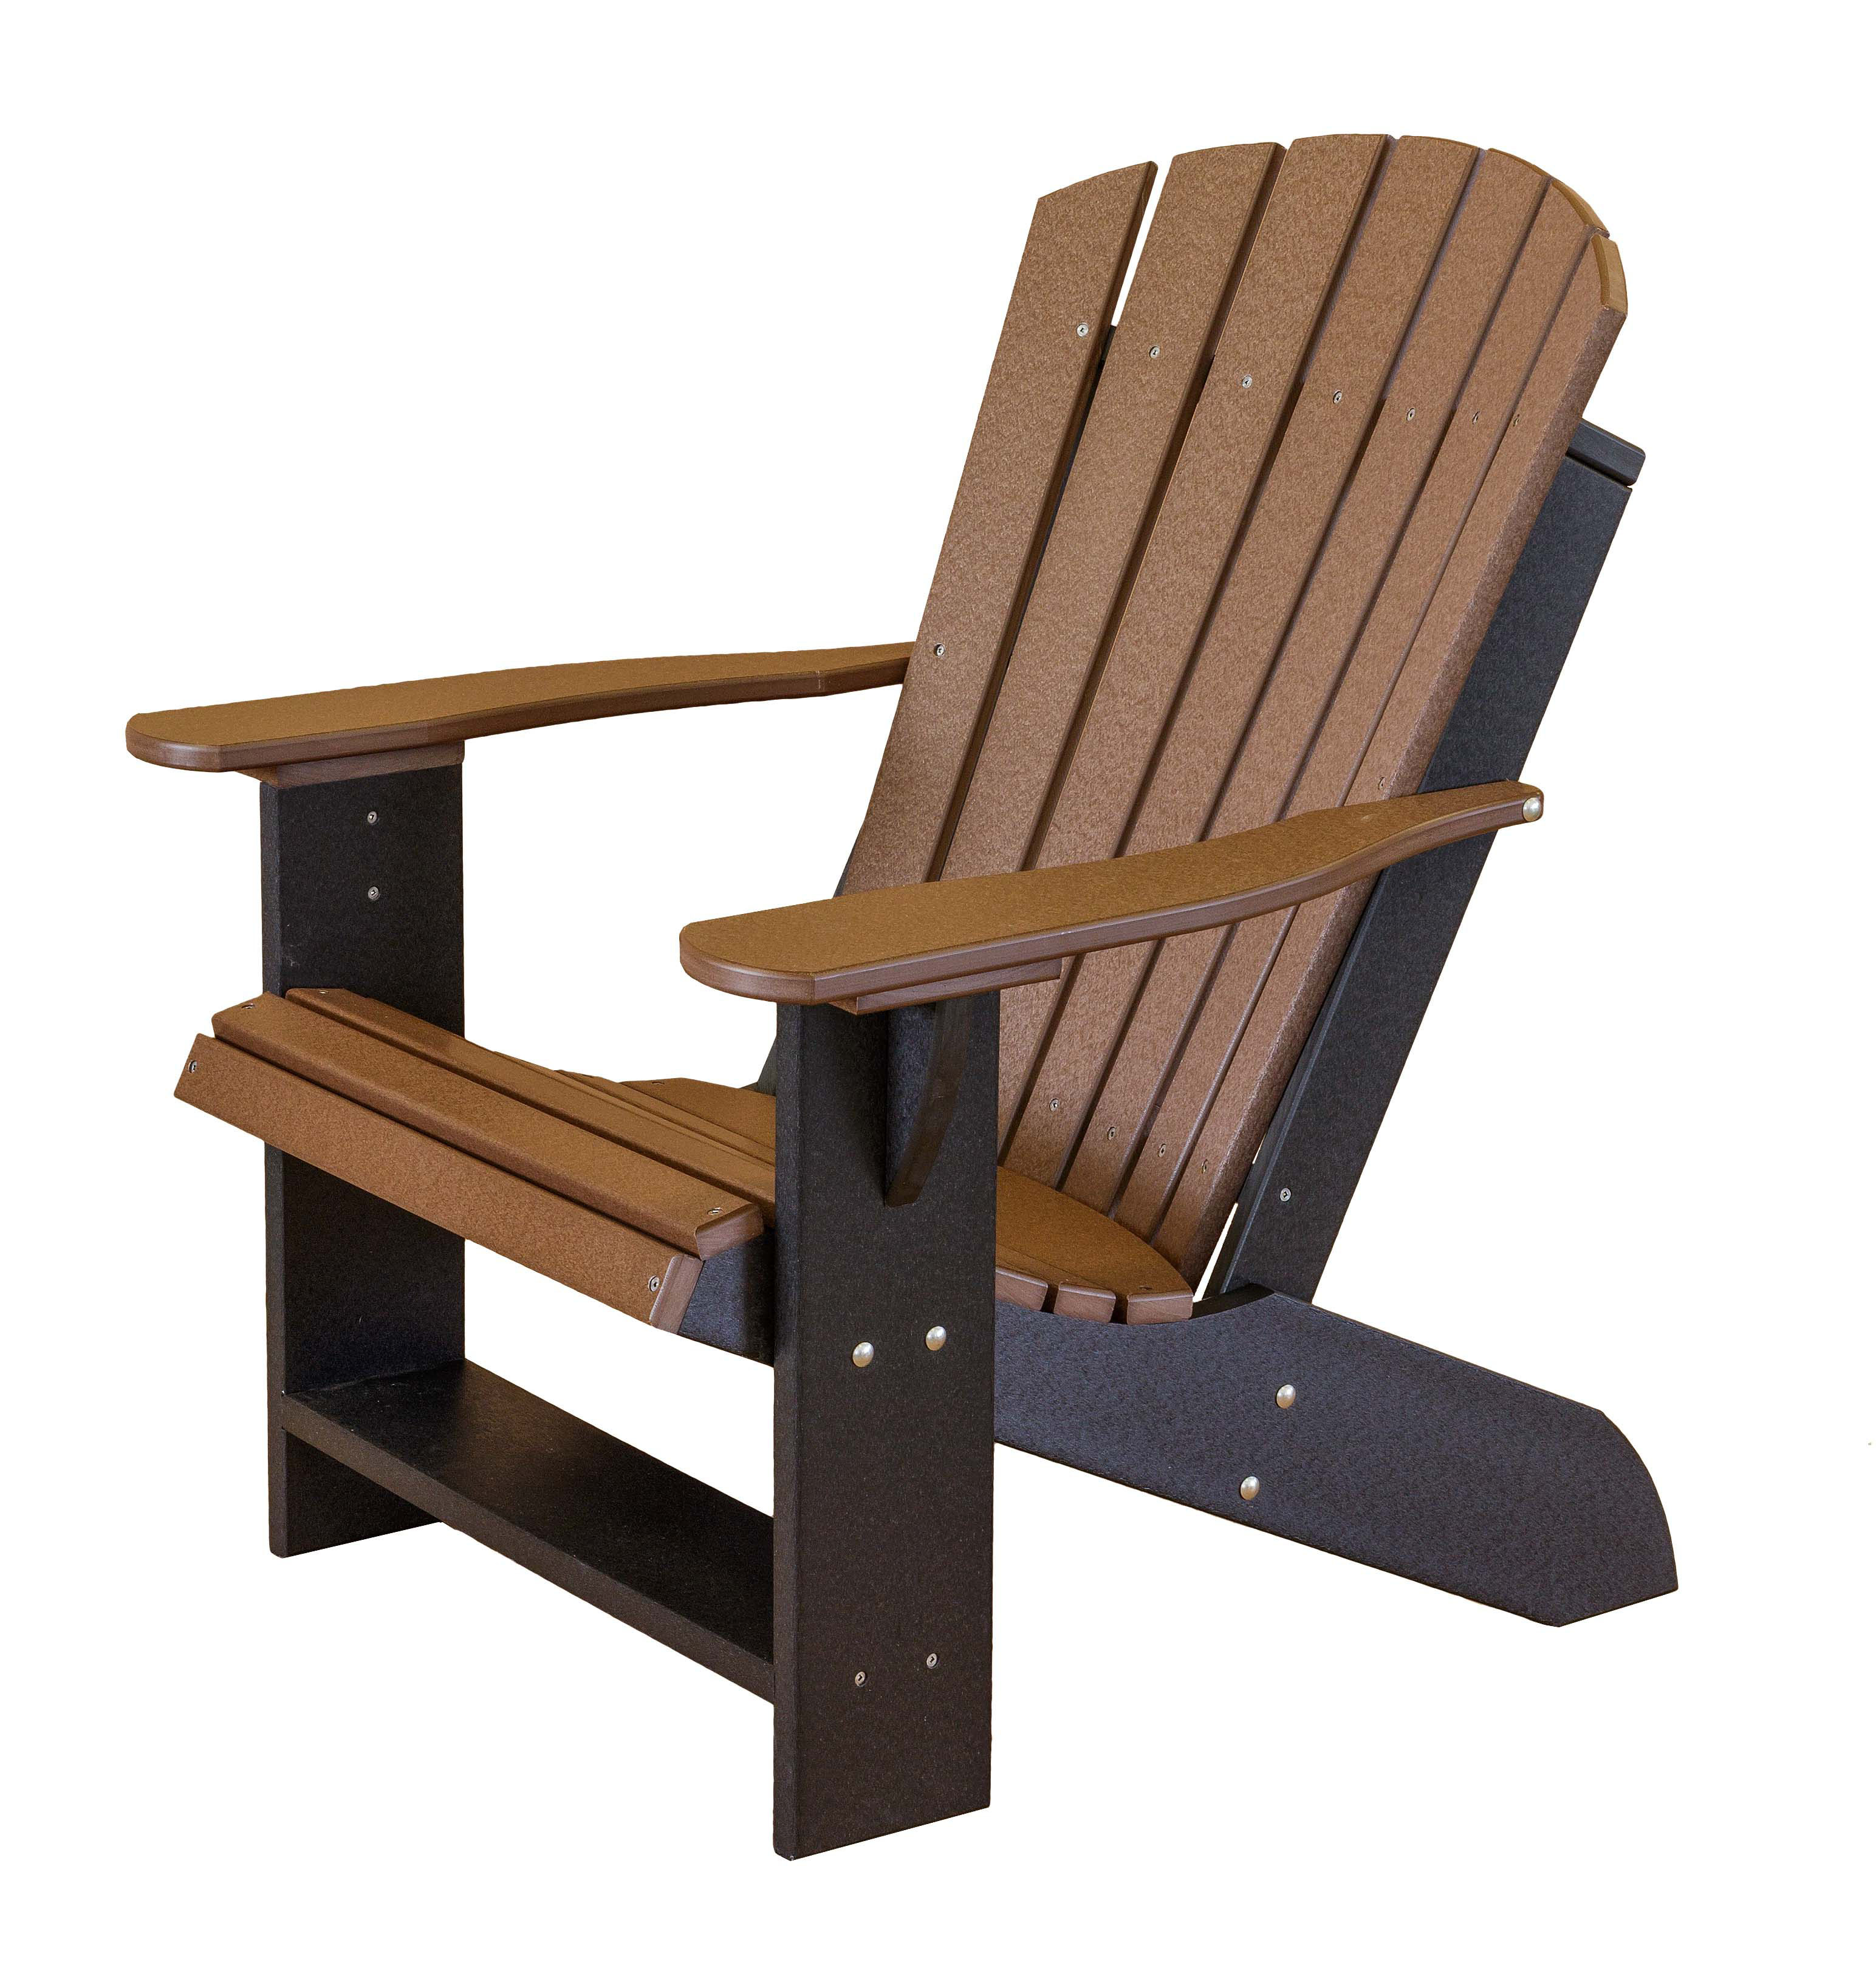 Adirondack chairs clipart free vector free stock 14 Adirondack Chair Vector Images - Adirondack Chair Clip Art ... vector free stock